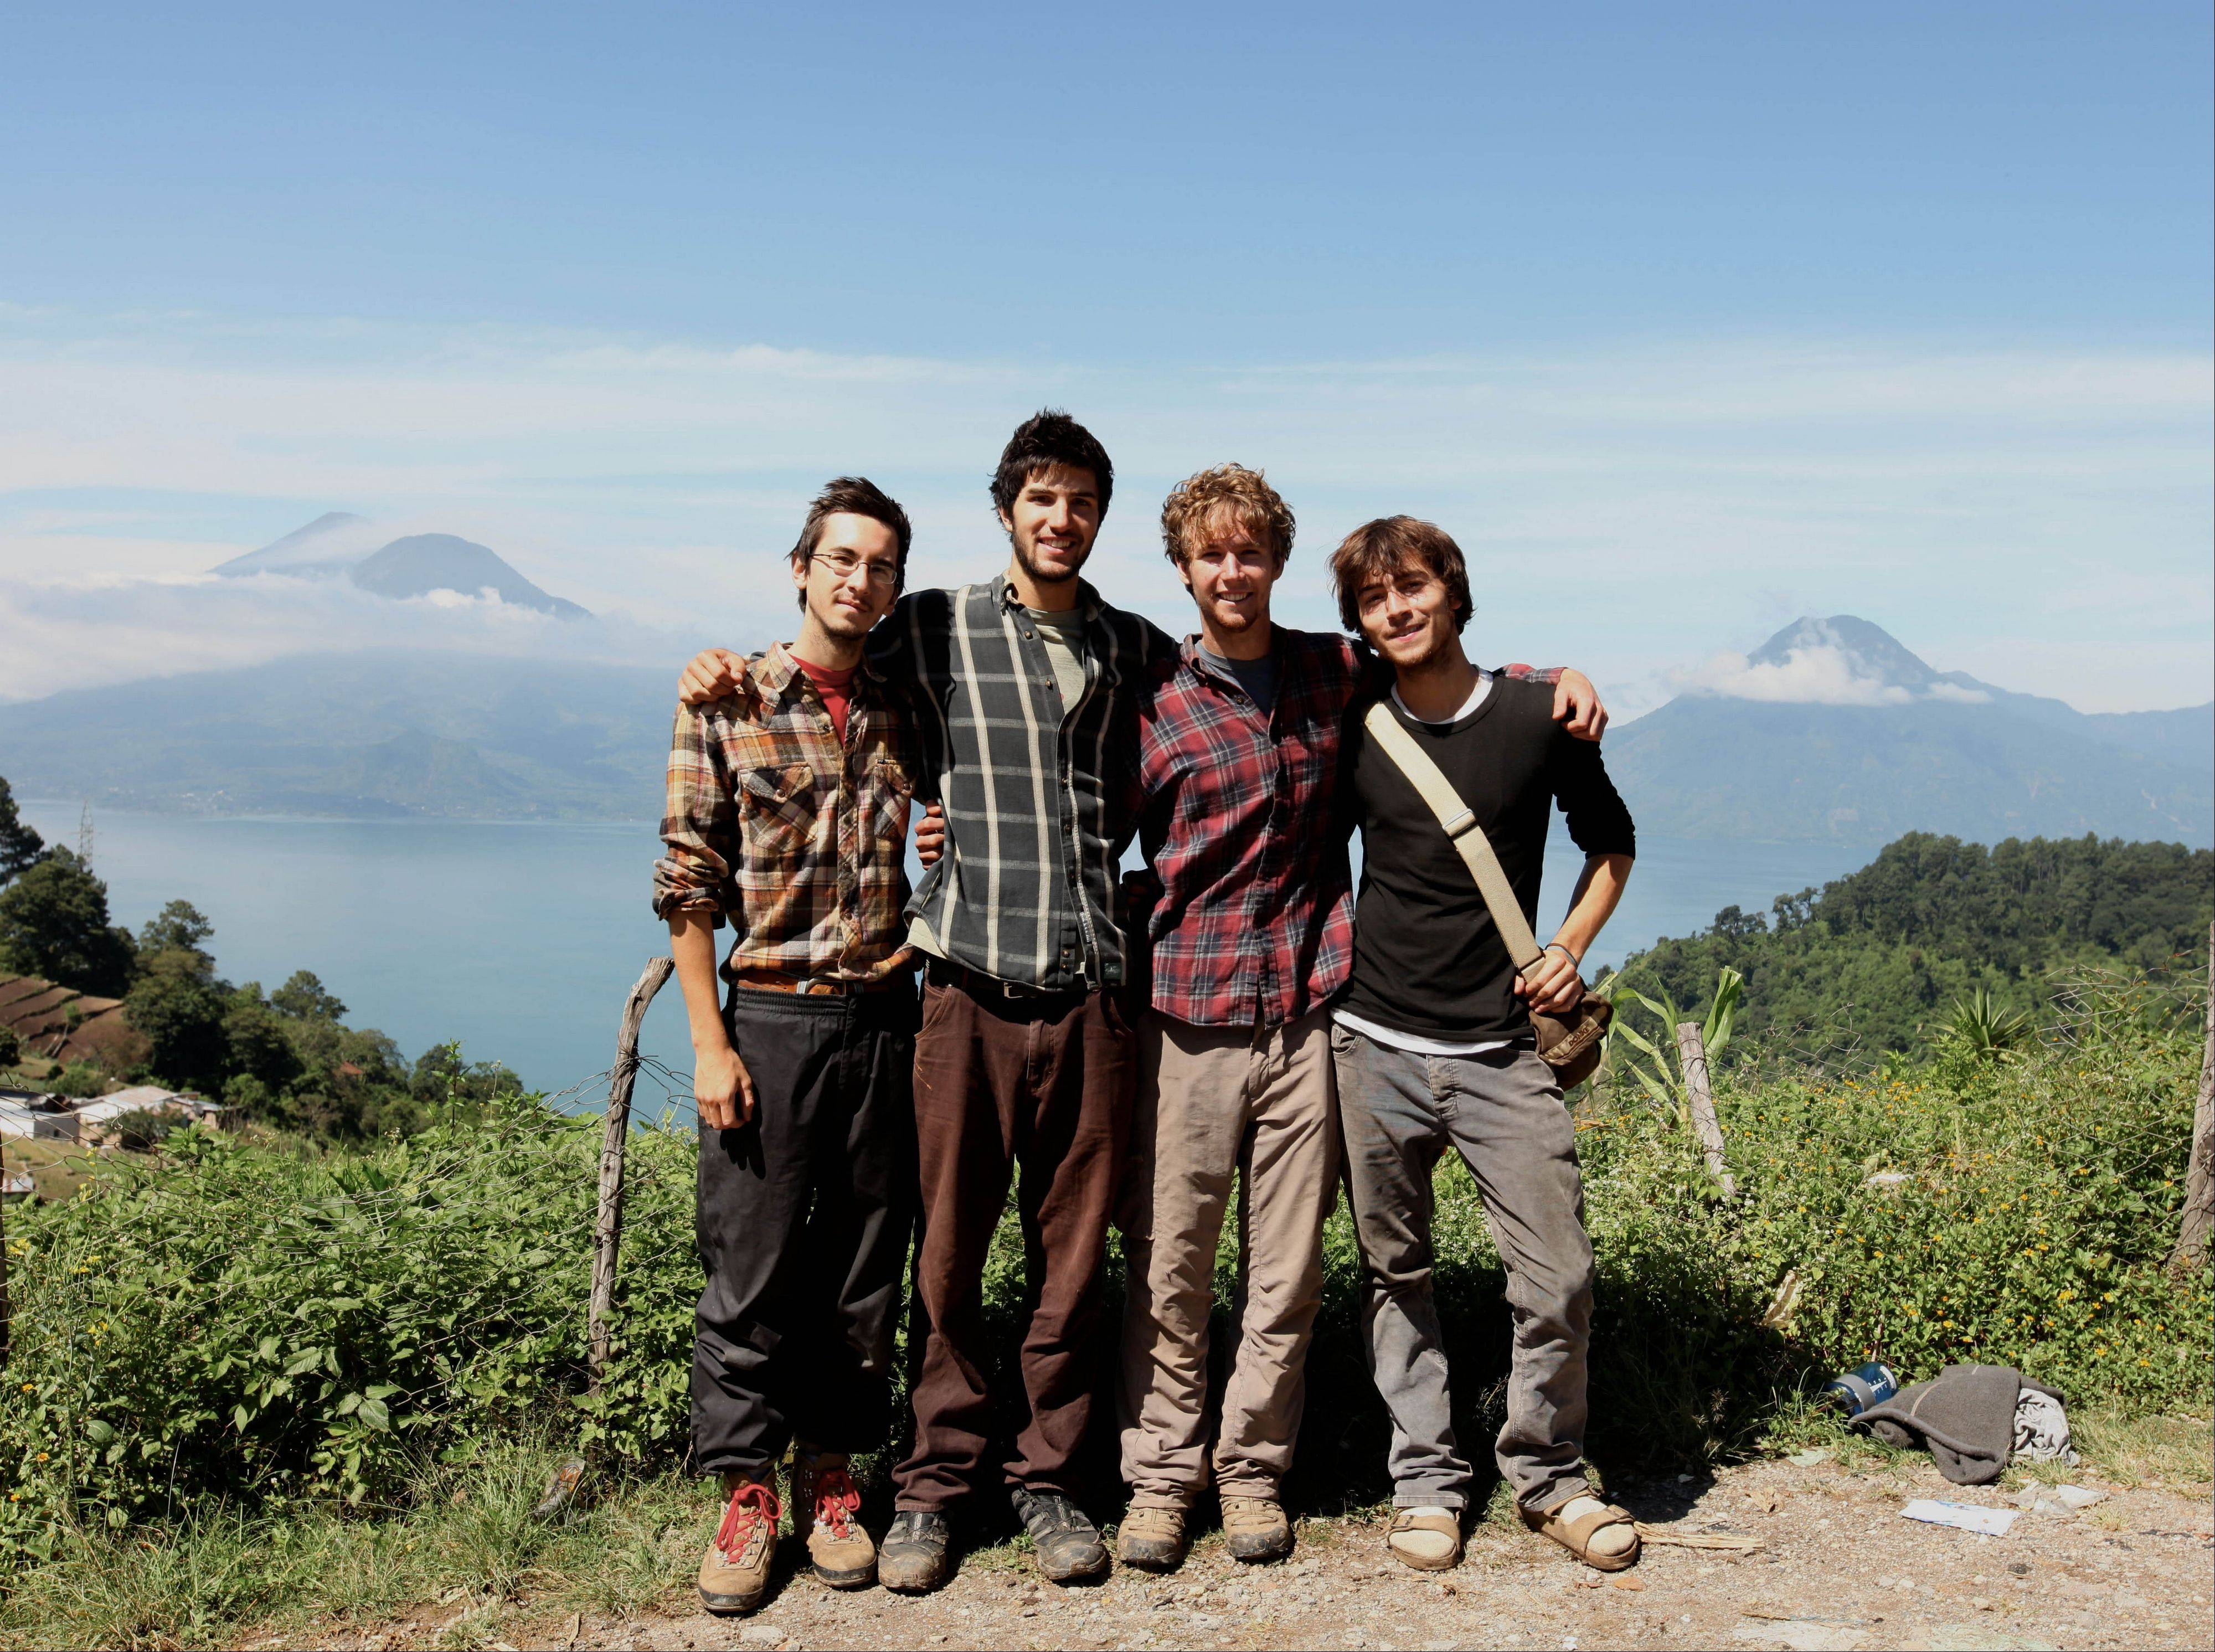 Sean Leonard, left, Zach Ingrasci, Chris Temple and Ryan Christoffersen in Pena Blanca, Guatemala. The foursome lived in the village on $1 a day per person for a summer to experience firsthand issues related to rural poverty, then made a film about their experiences.